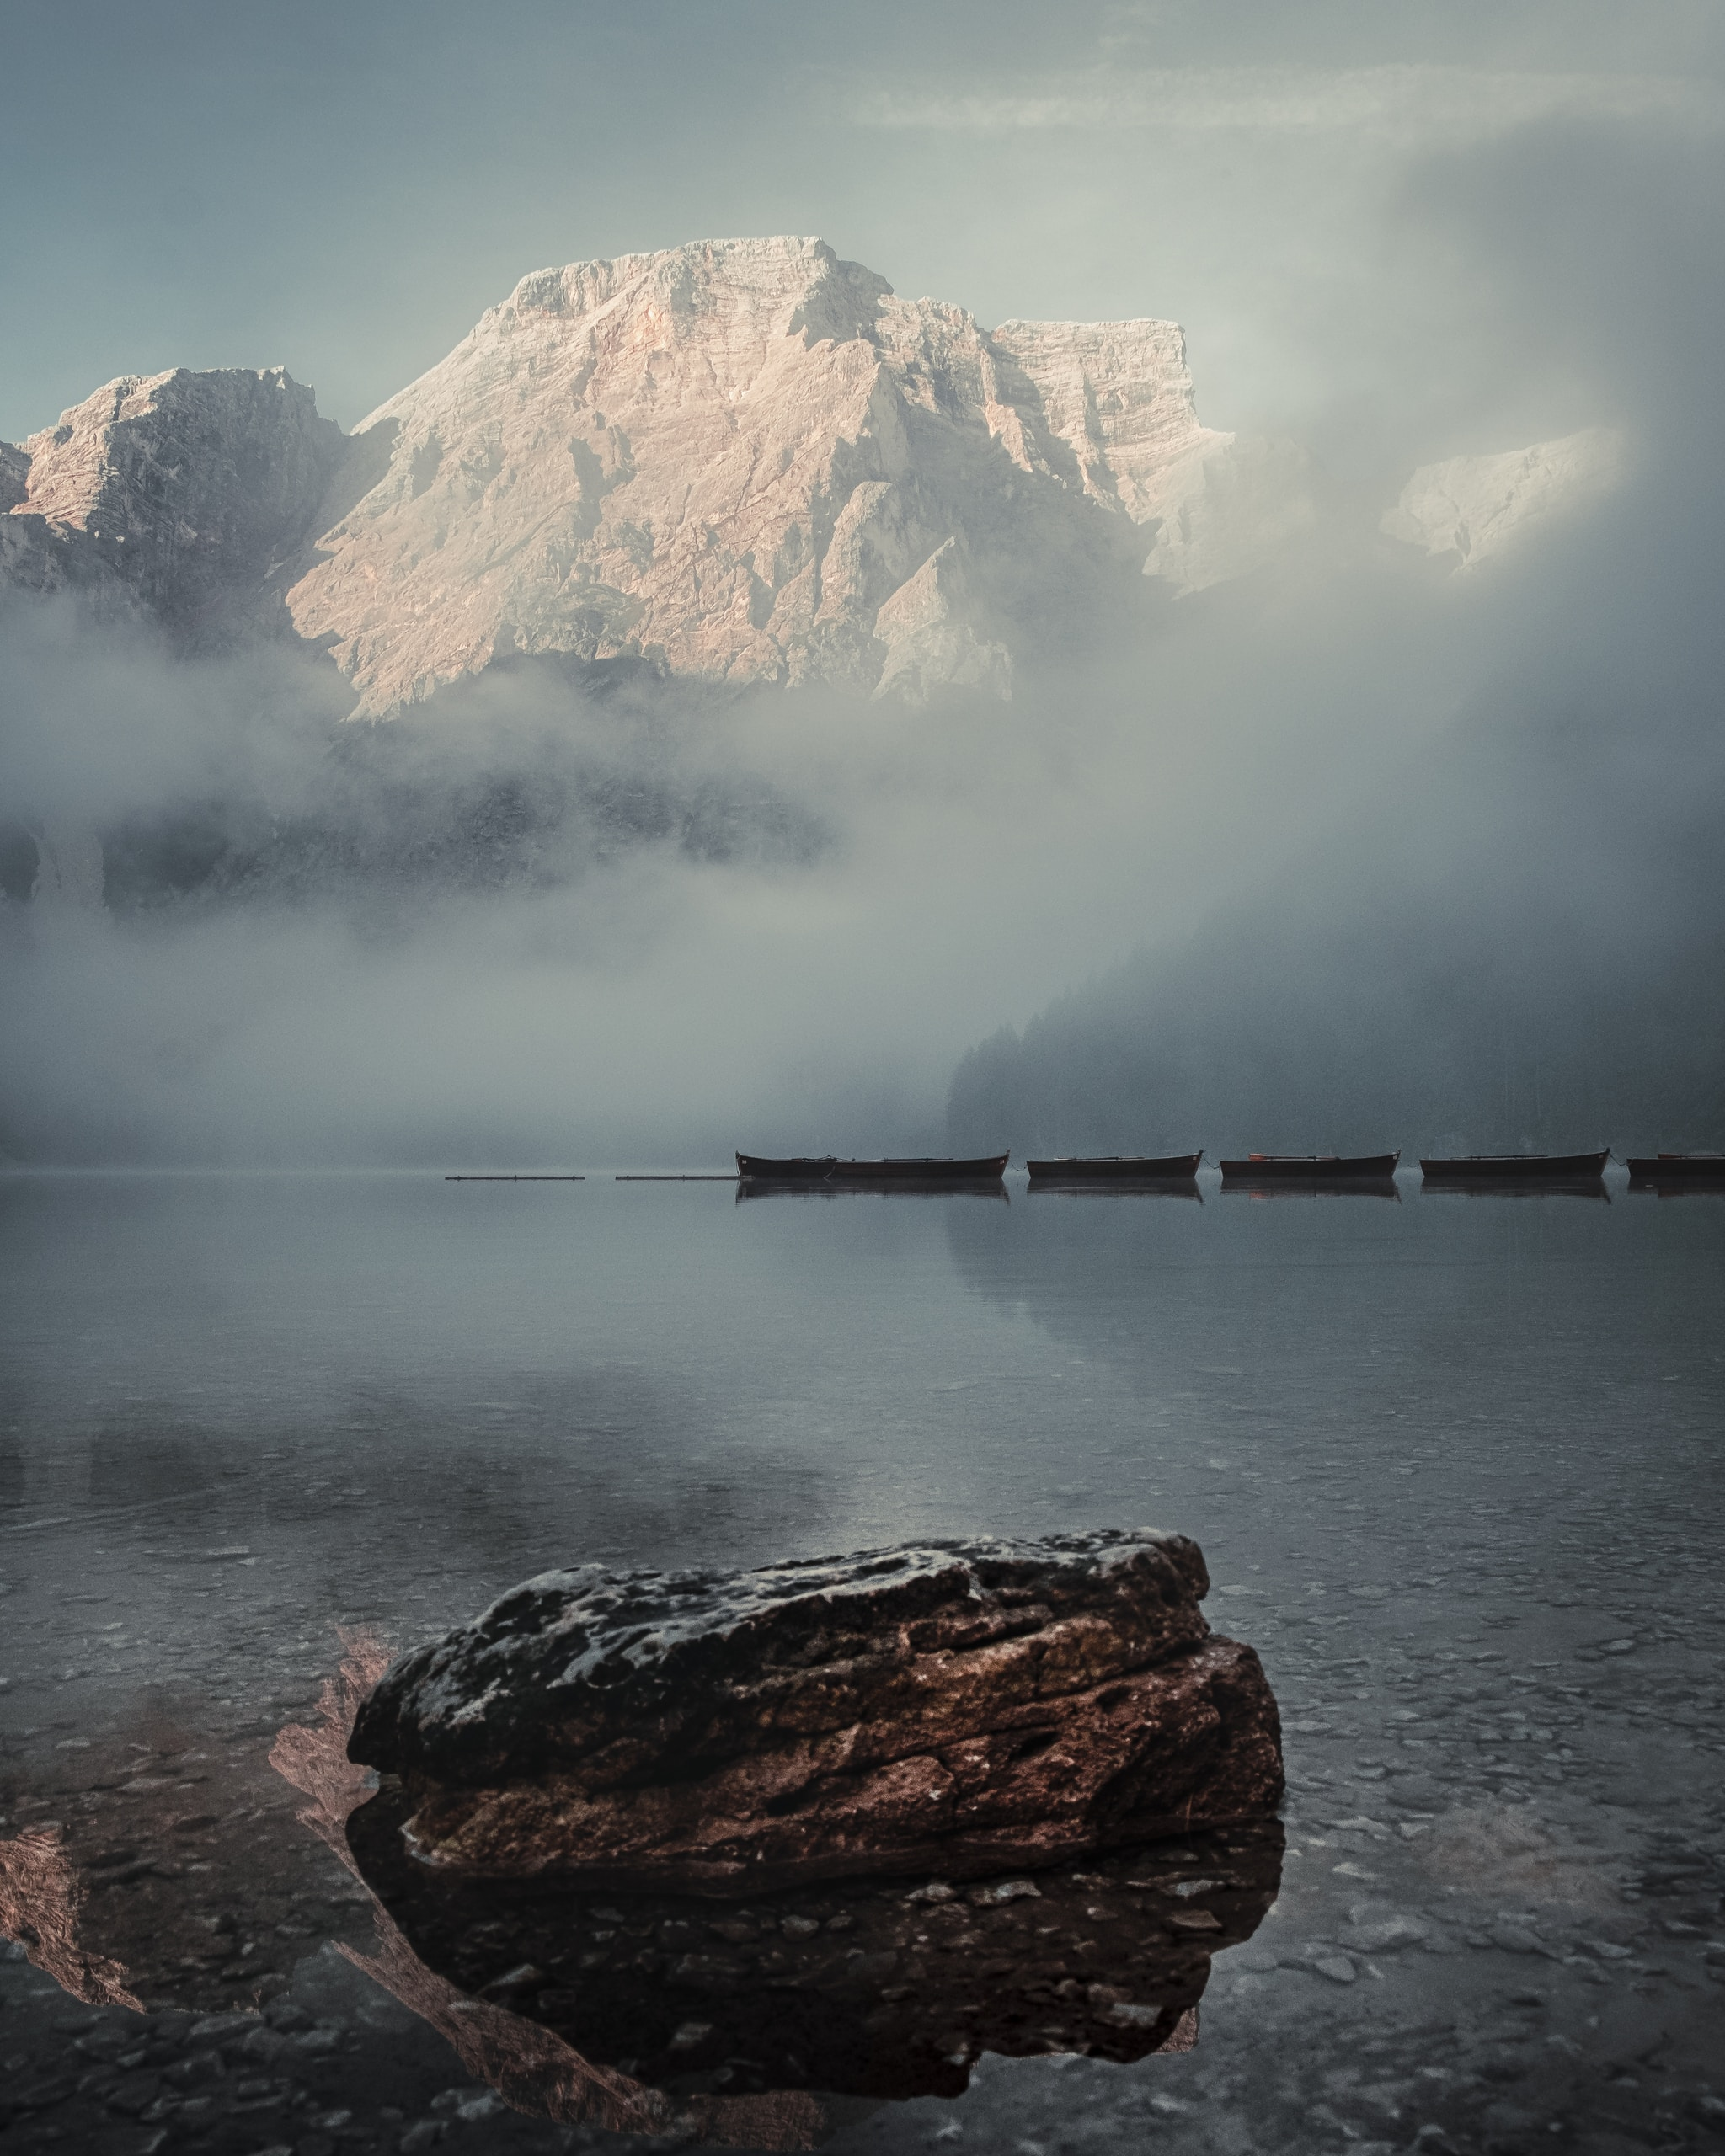 brown wooden dock on body of water near snow covered mountain during daytime